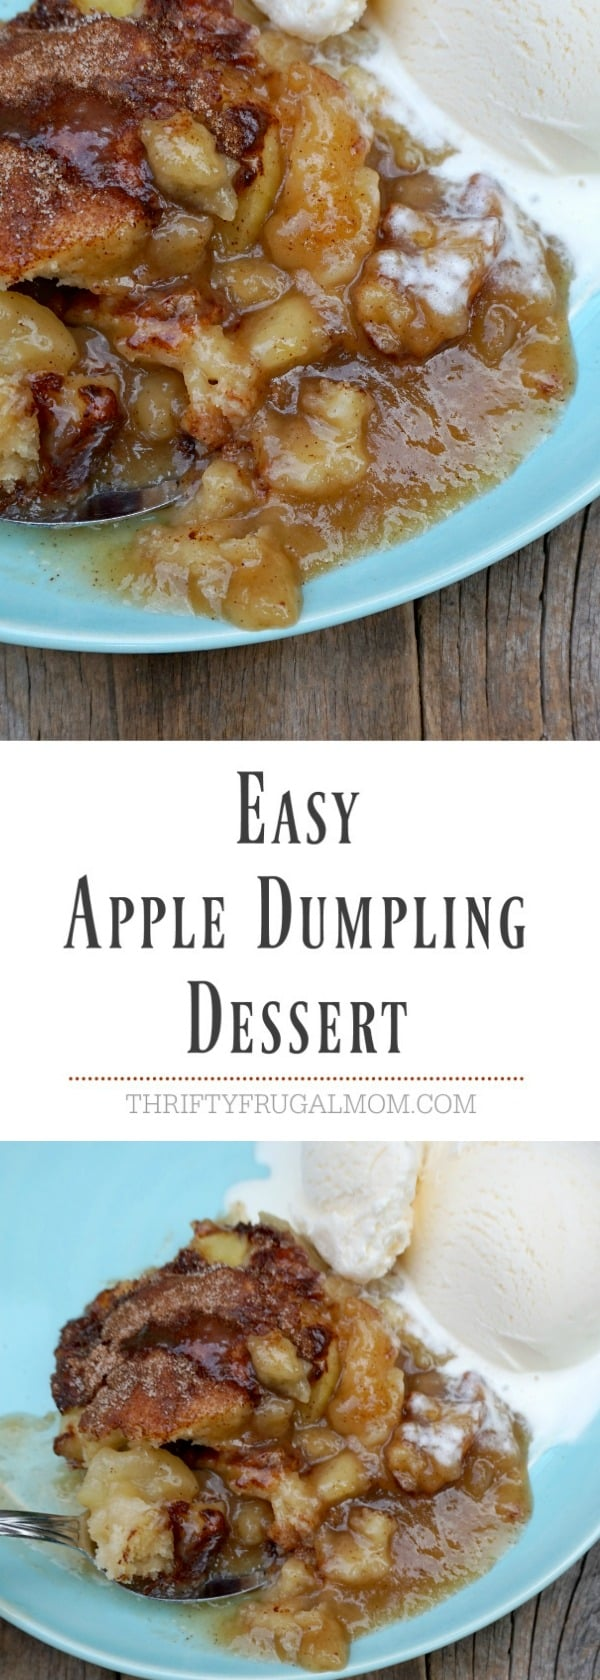 Easy Apple Dumpling Dessert